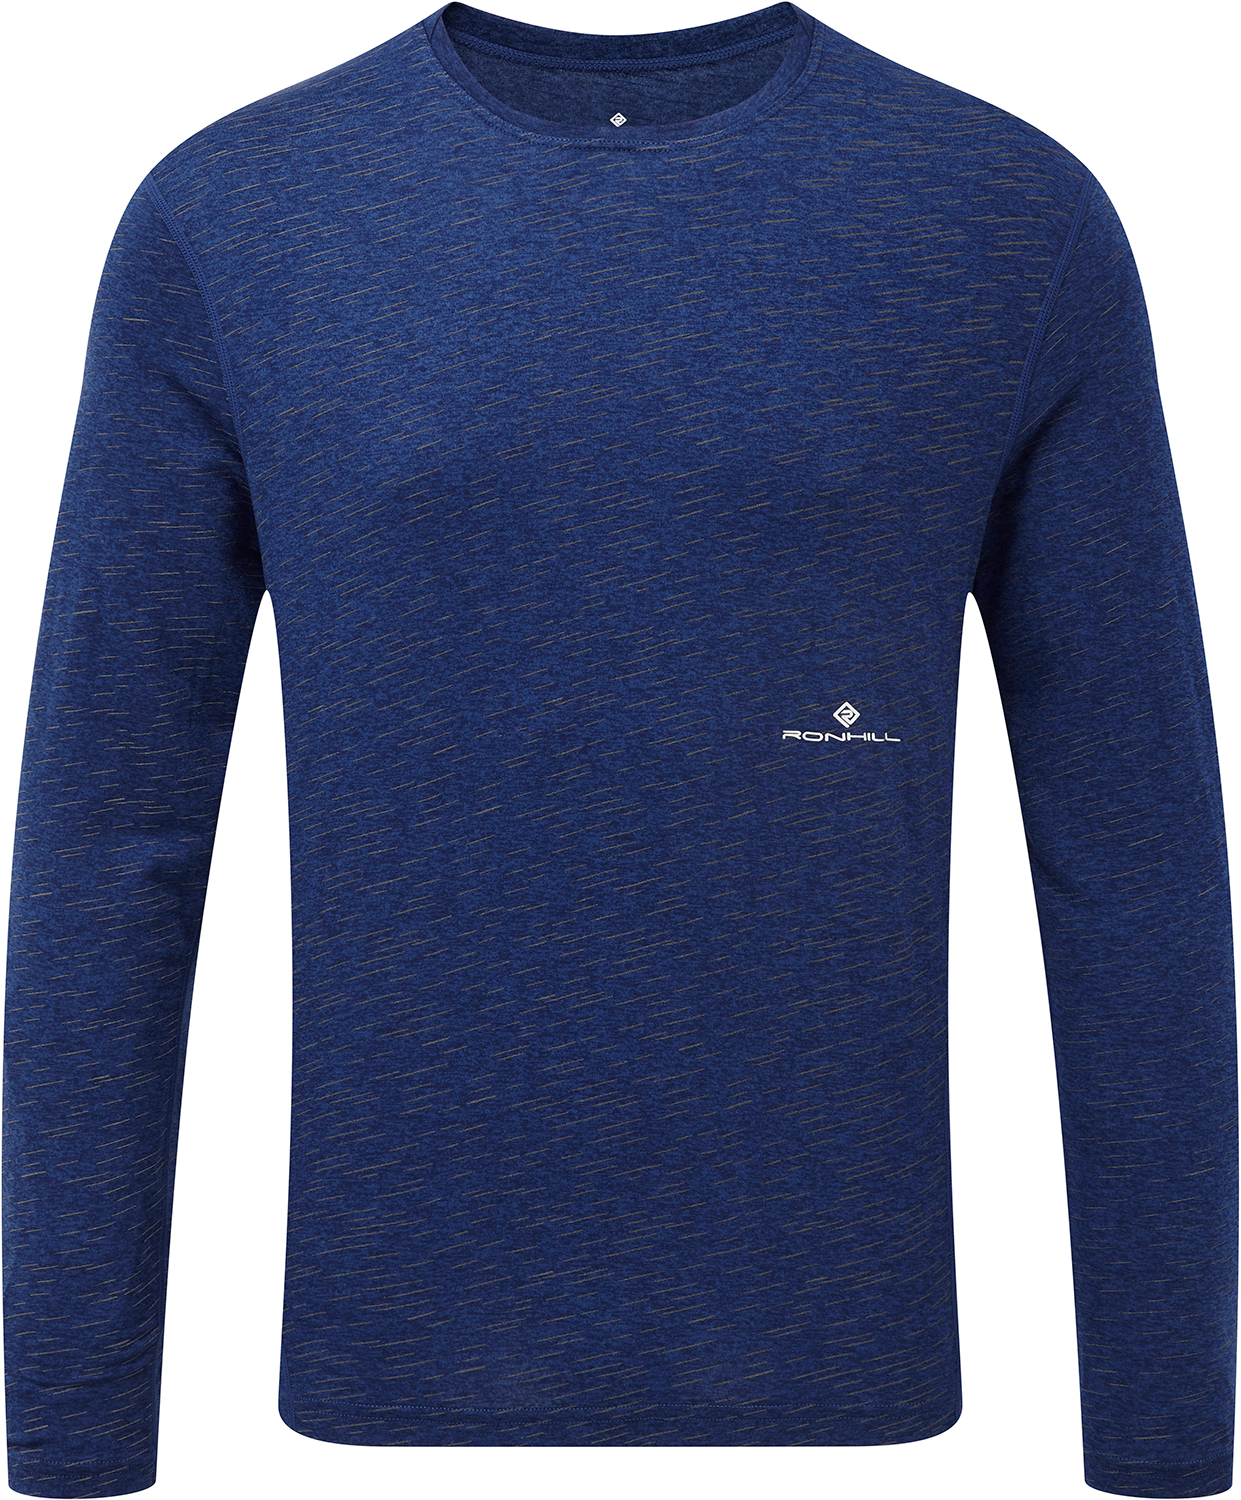 Ronhill Momentum Afterlight Long Sleeve Run Top | Jerseys